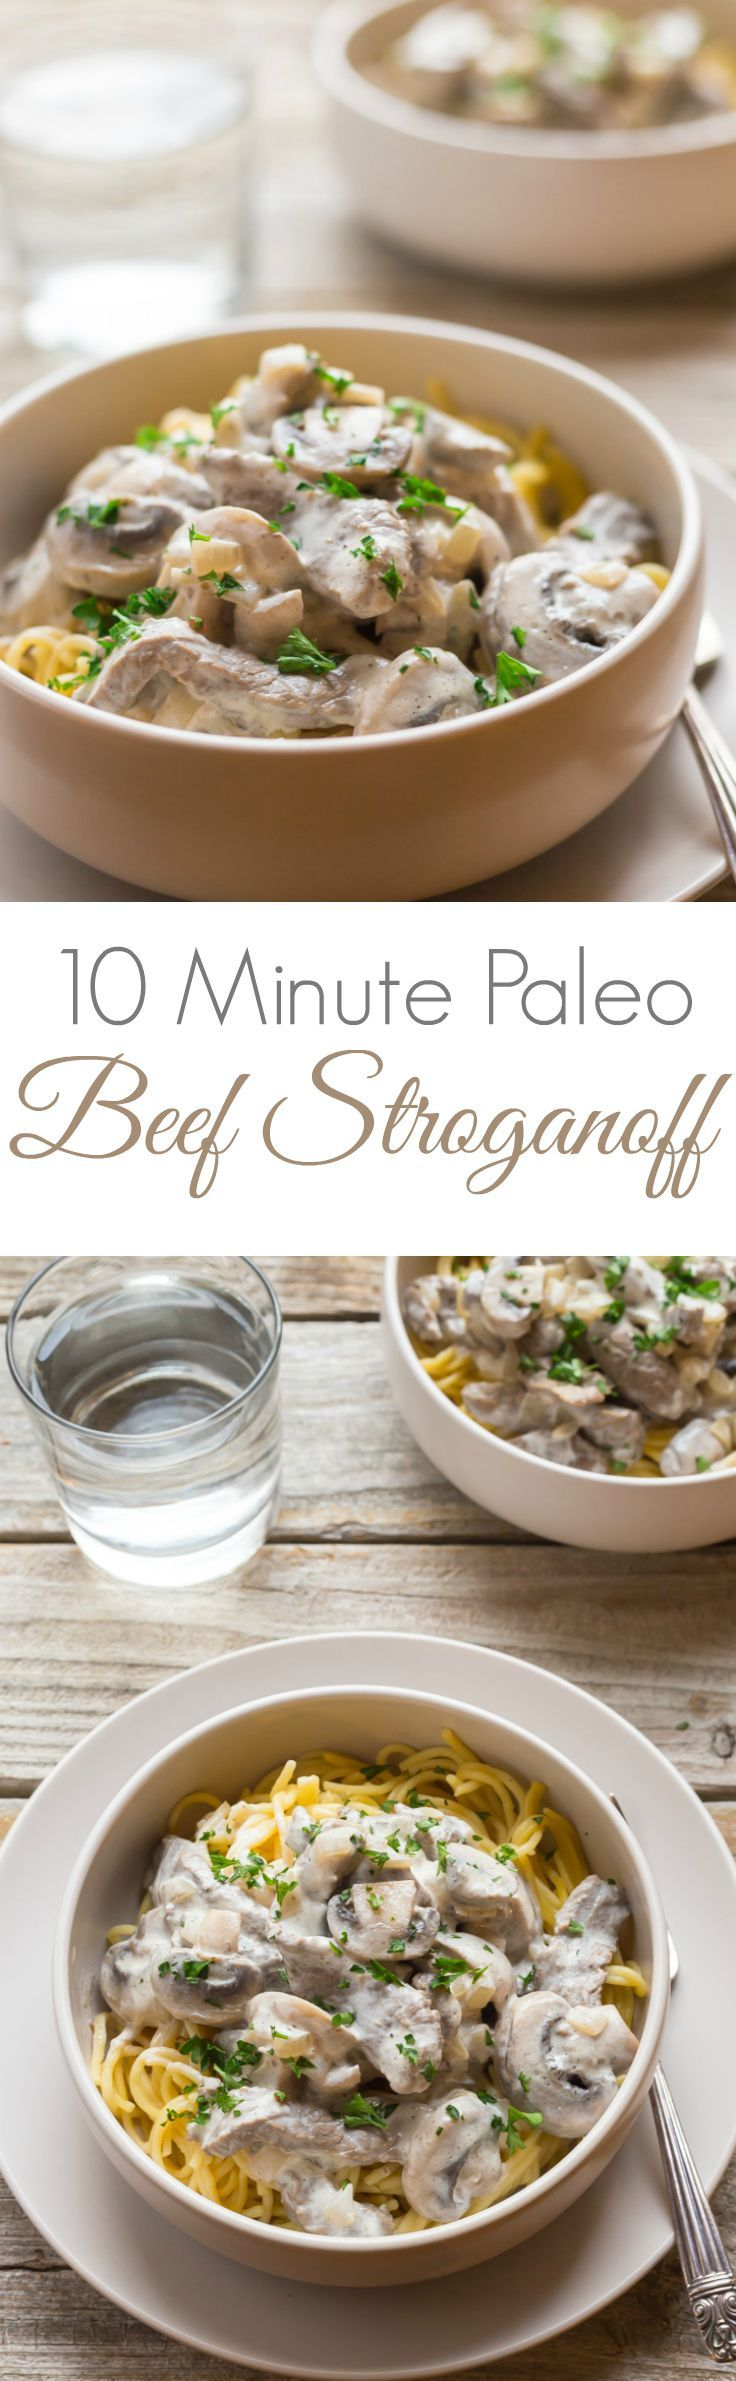 Easy Paleo Beef Stroganoff recipe, it's so tasty and you can make it in only TEN minutes!! | gluten free | paleo | primal |